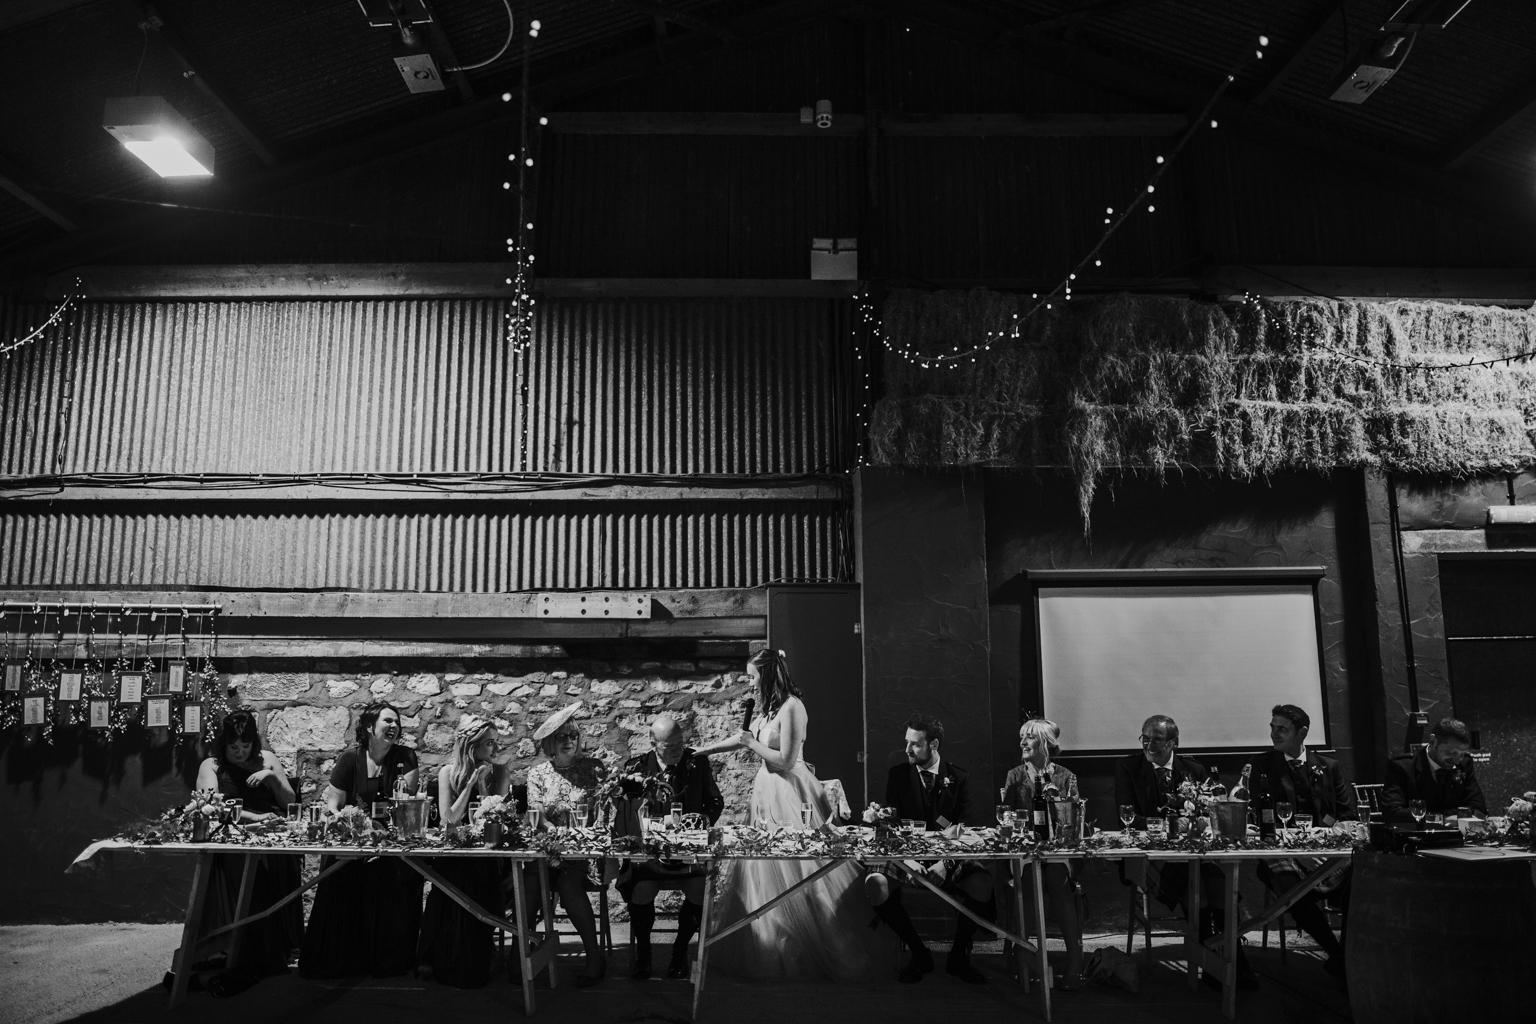 The bride is doing speech at the wedding reception, Harelaw farm, Ayrshire wedding photography